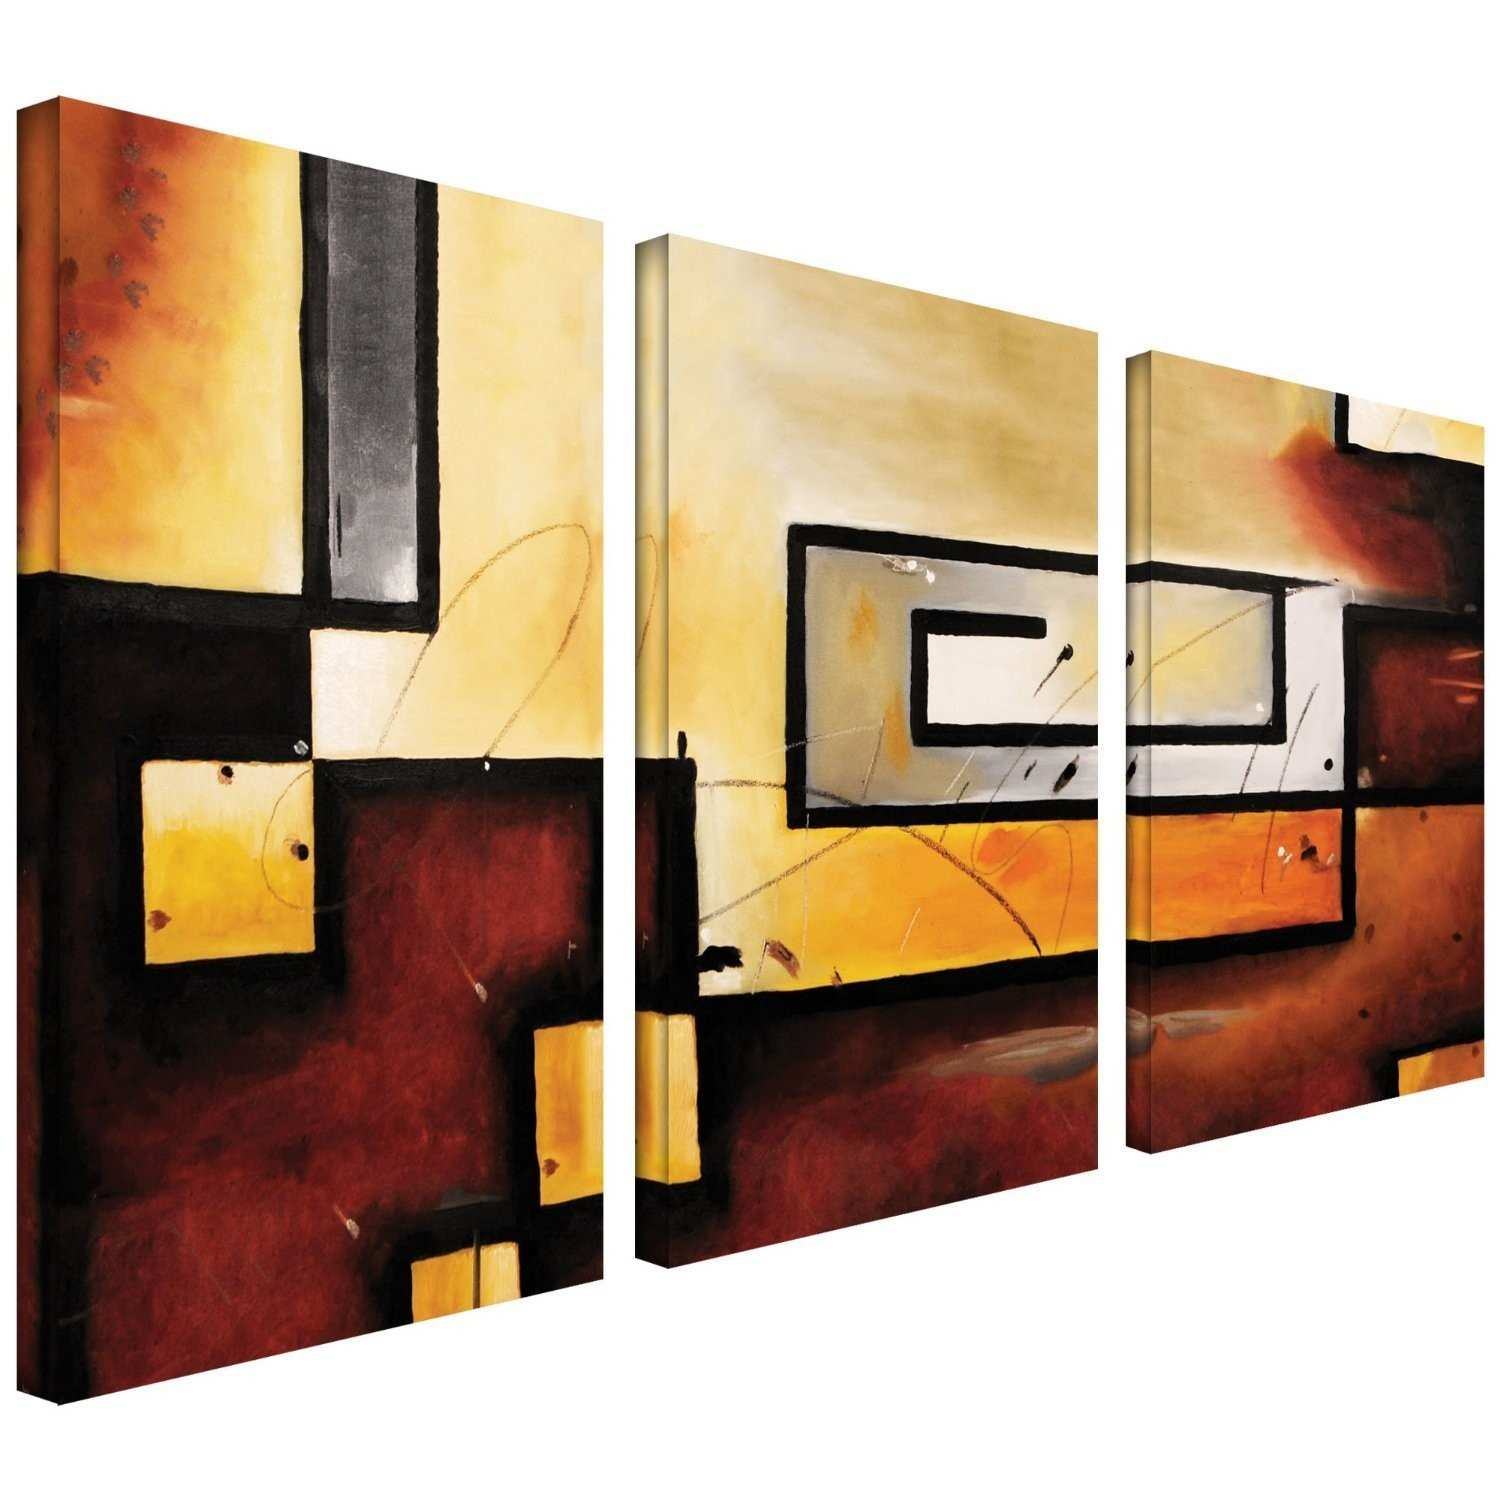 Luxury Three Piece Wall Art Sets Collection Wall Art Collections